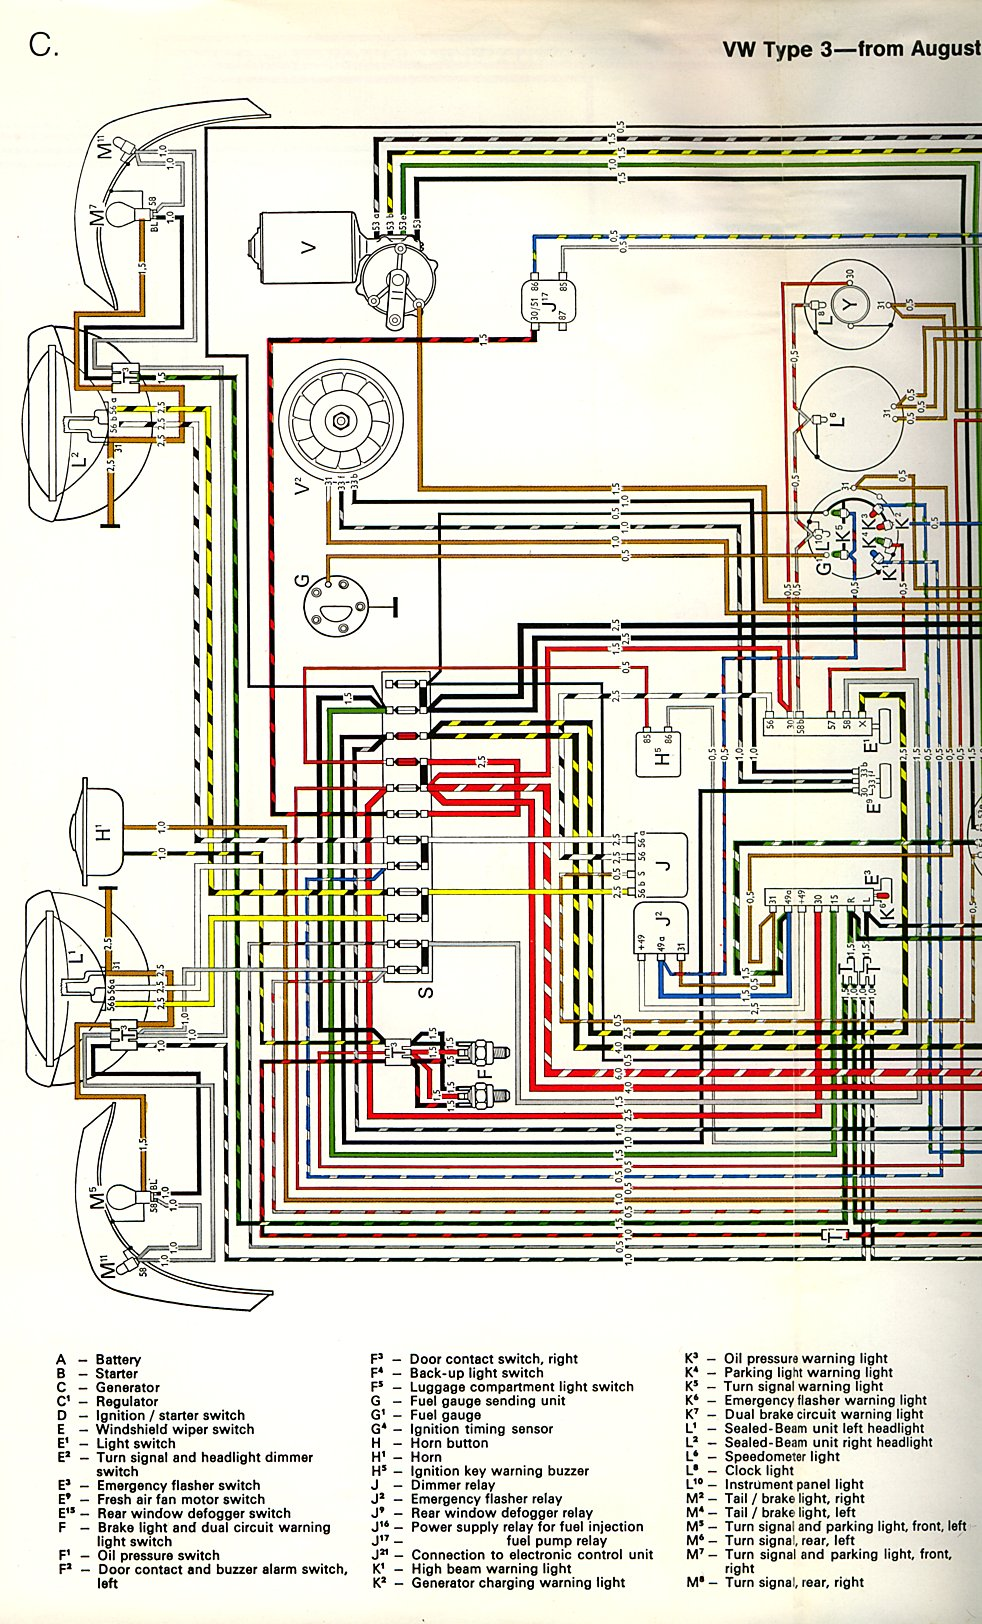 type3_72a thesamba com type 3 wiring diagrams 1968 vw bus wiring diagram at bakdesigns.co